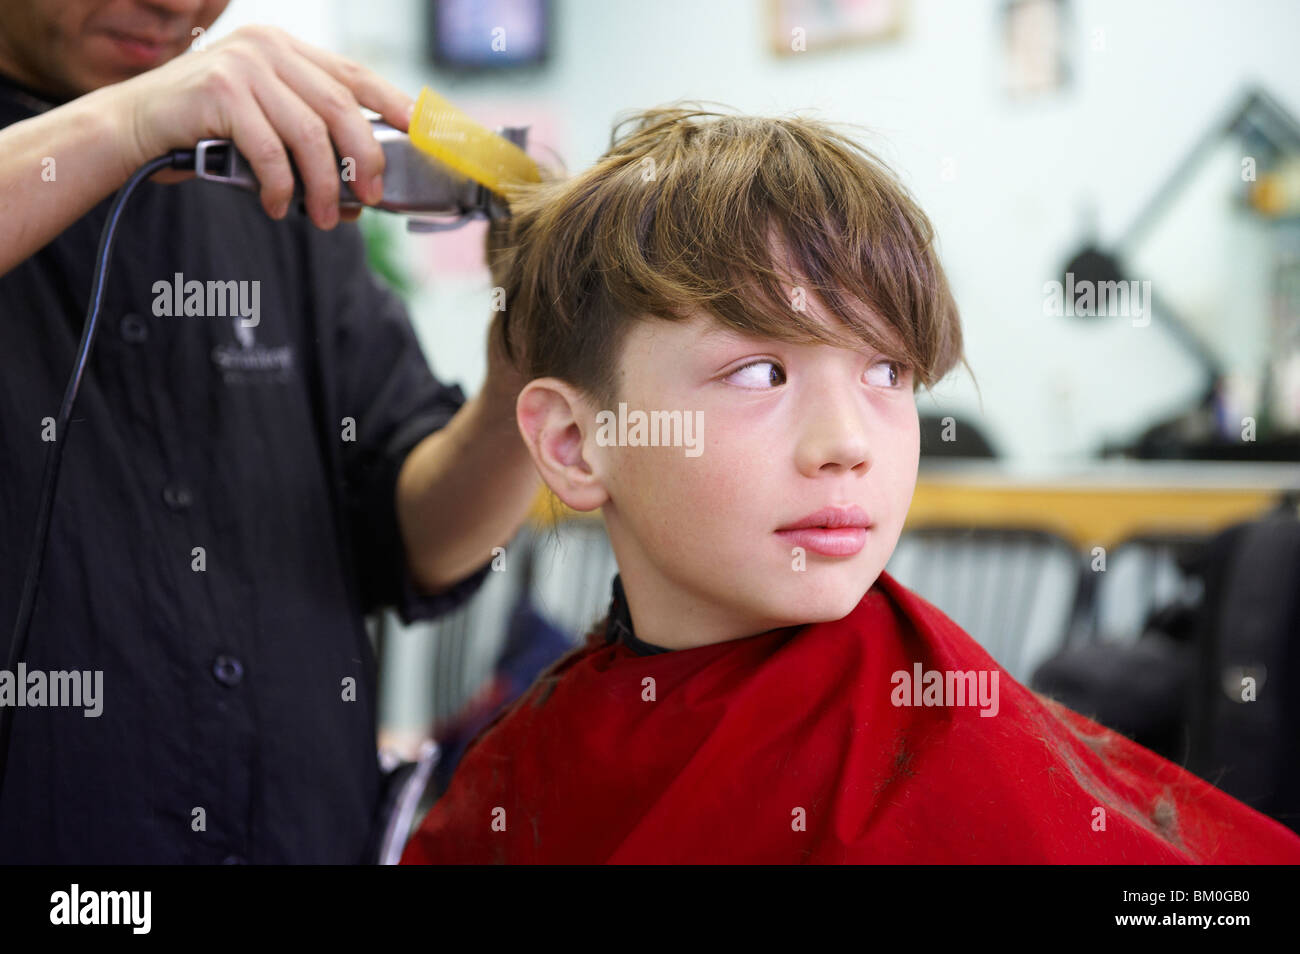 Boy getting haircut, Toronto, Ontario - Stock Image